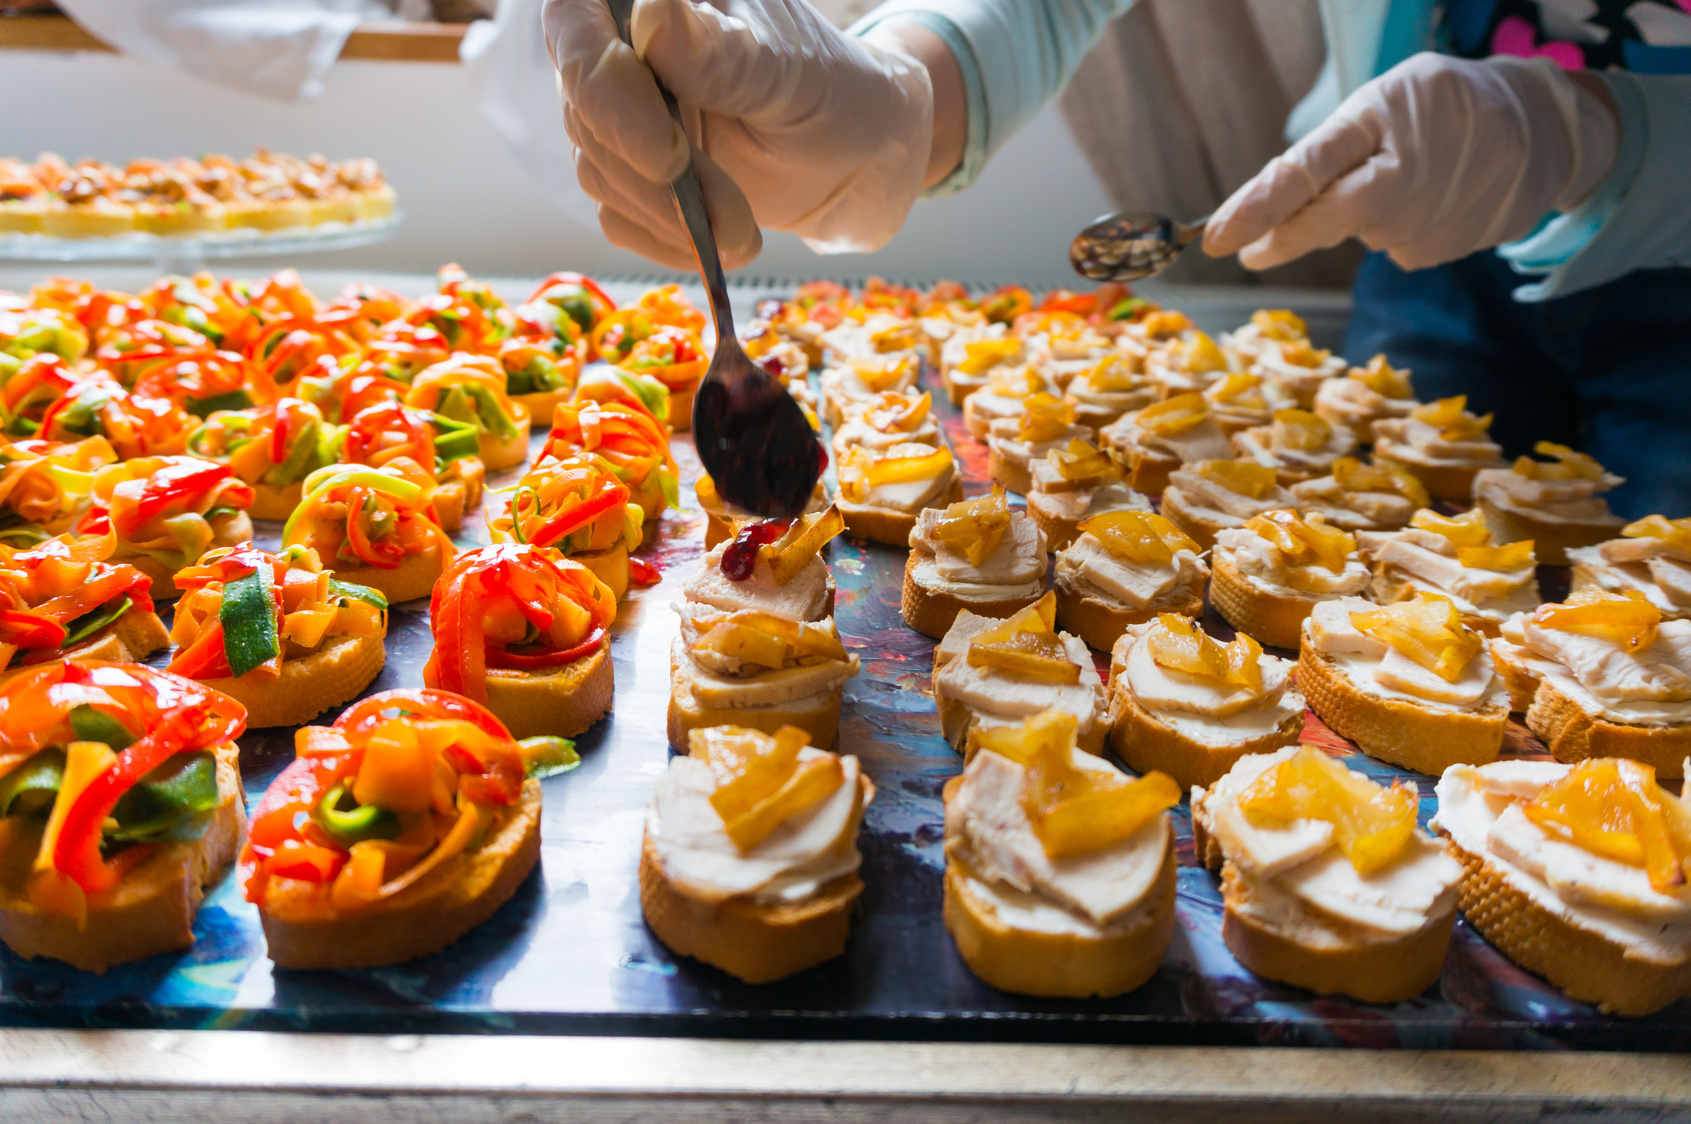 Arranging catering food